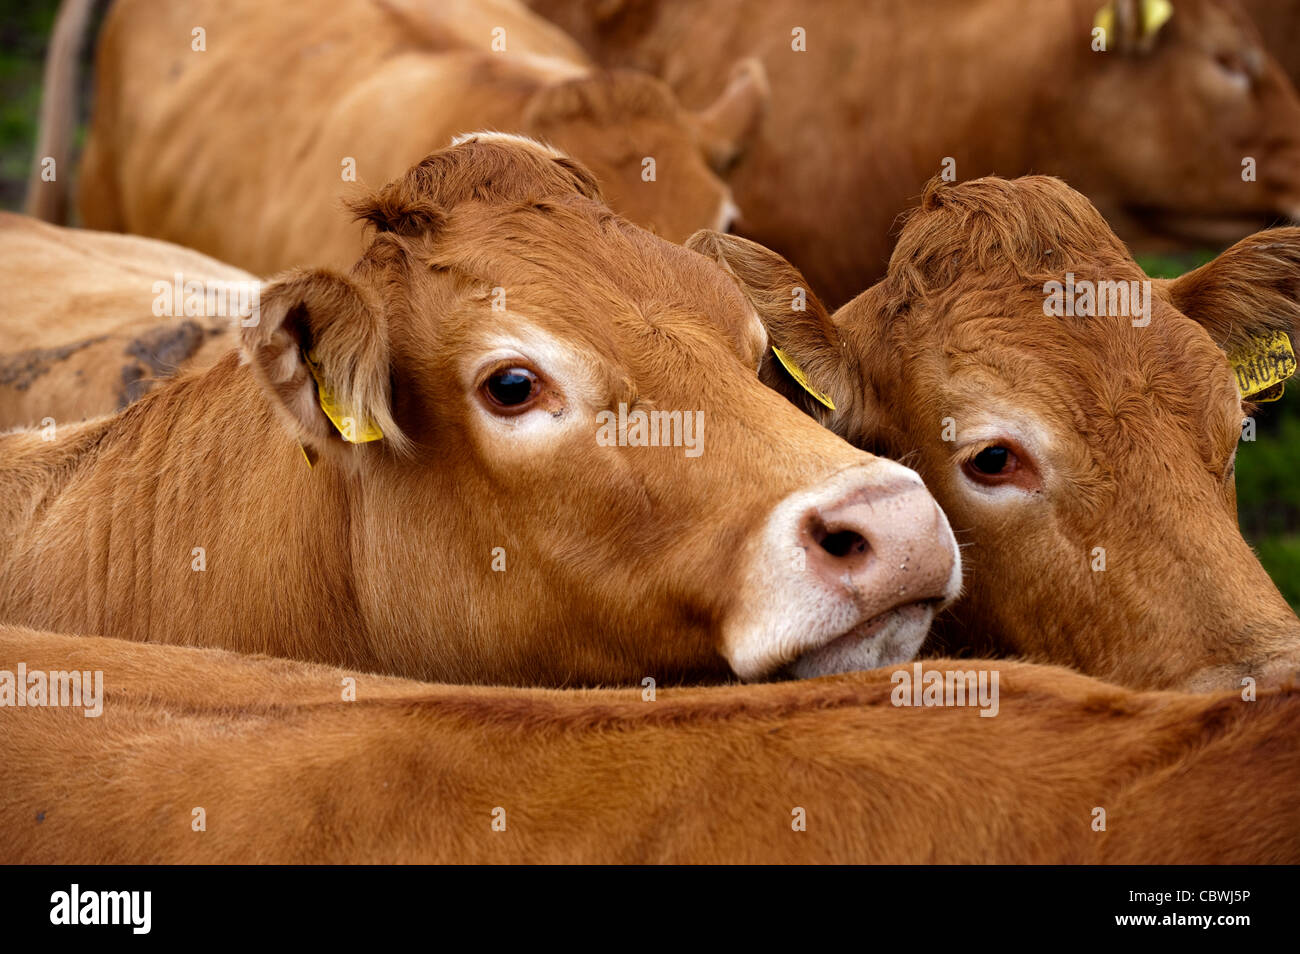 Herd of Limousin cattle. - Stock Image